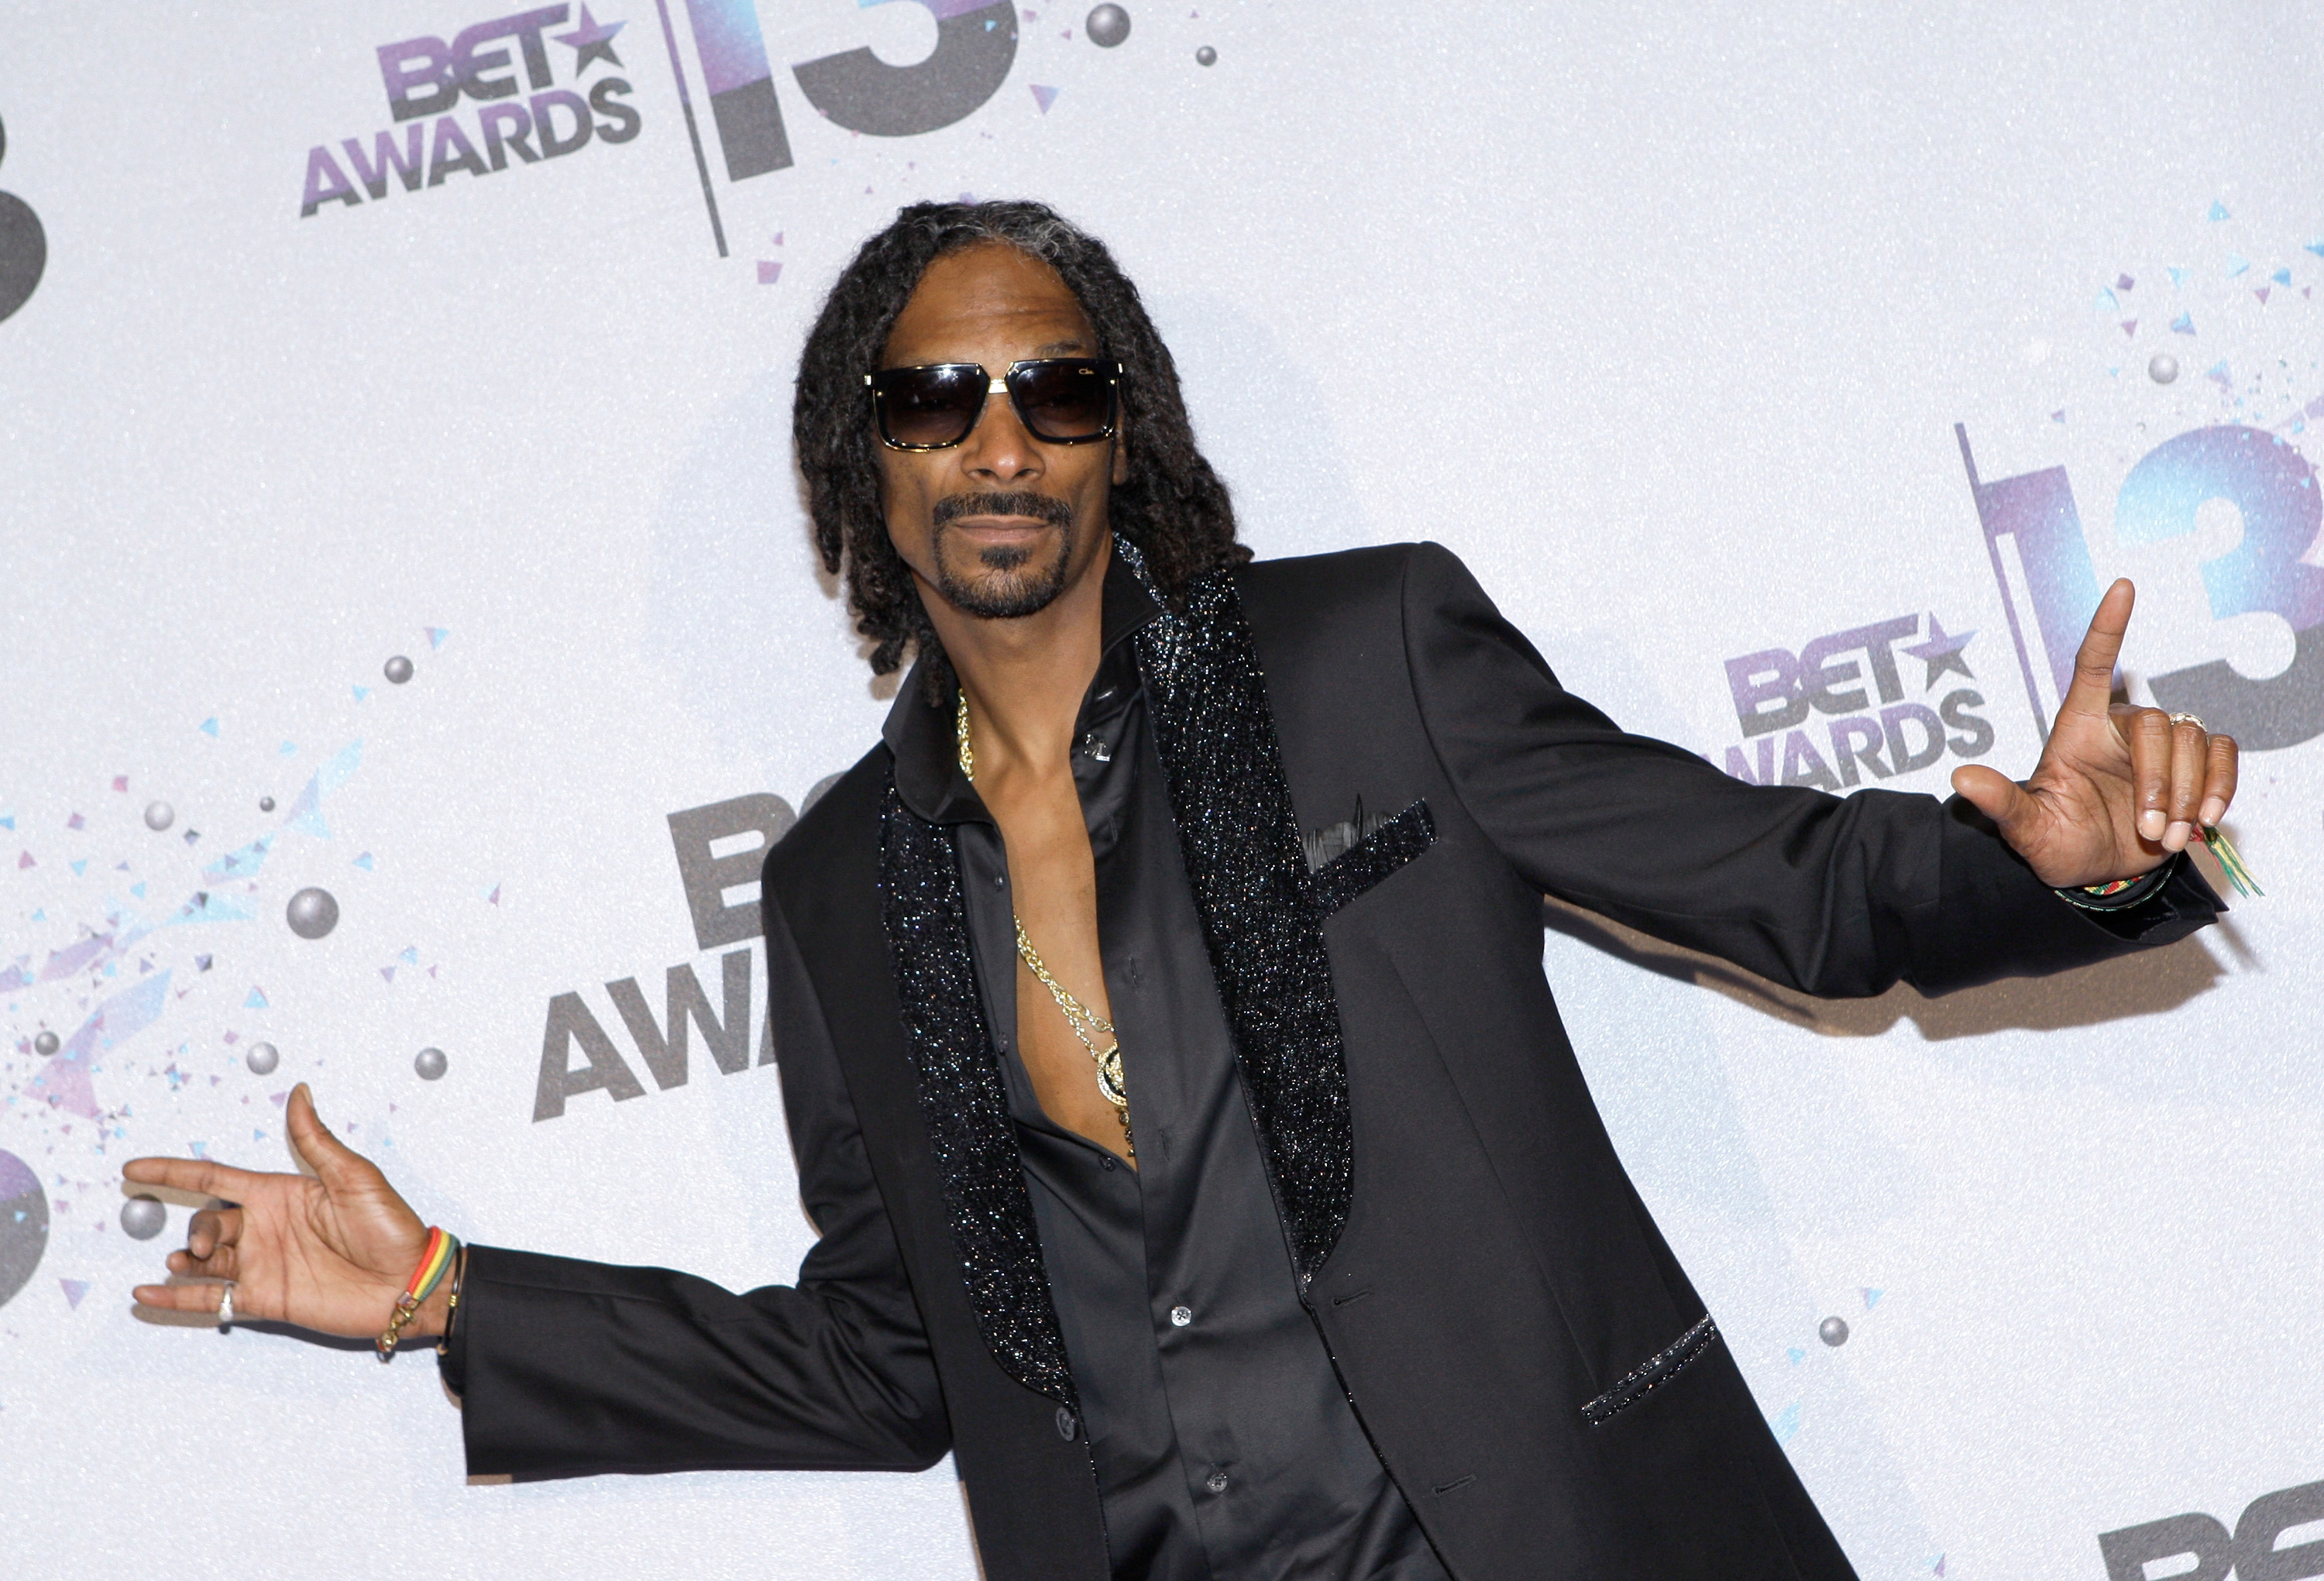 Snoop Dogg has already proved he's good at baking so now he's taking on cookery lessons